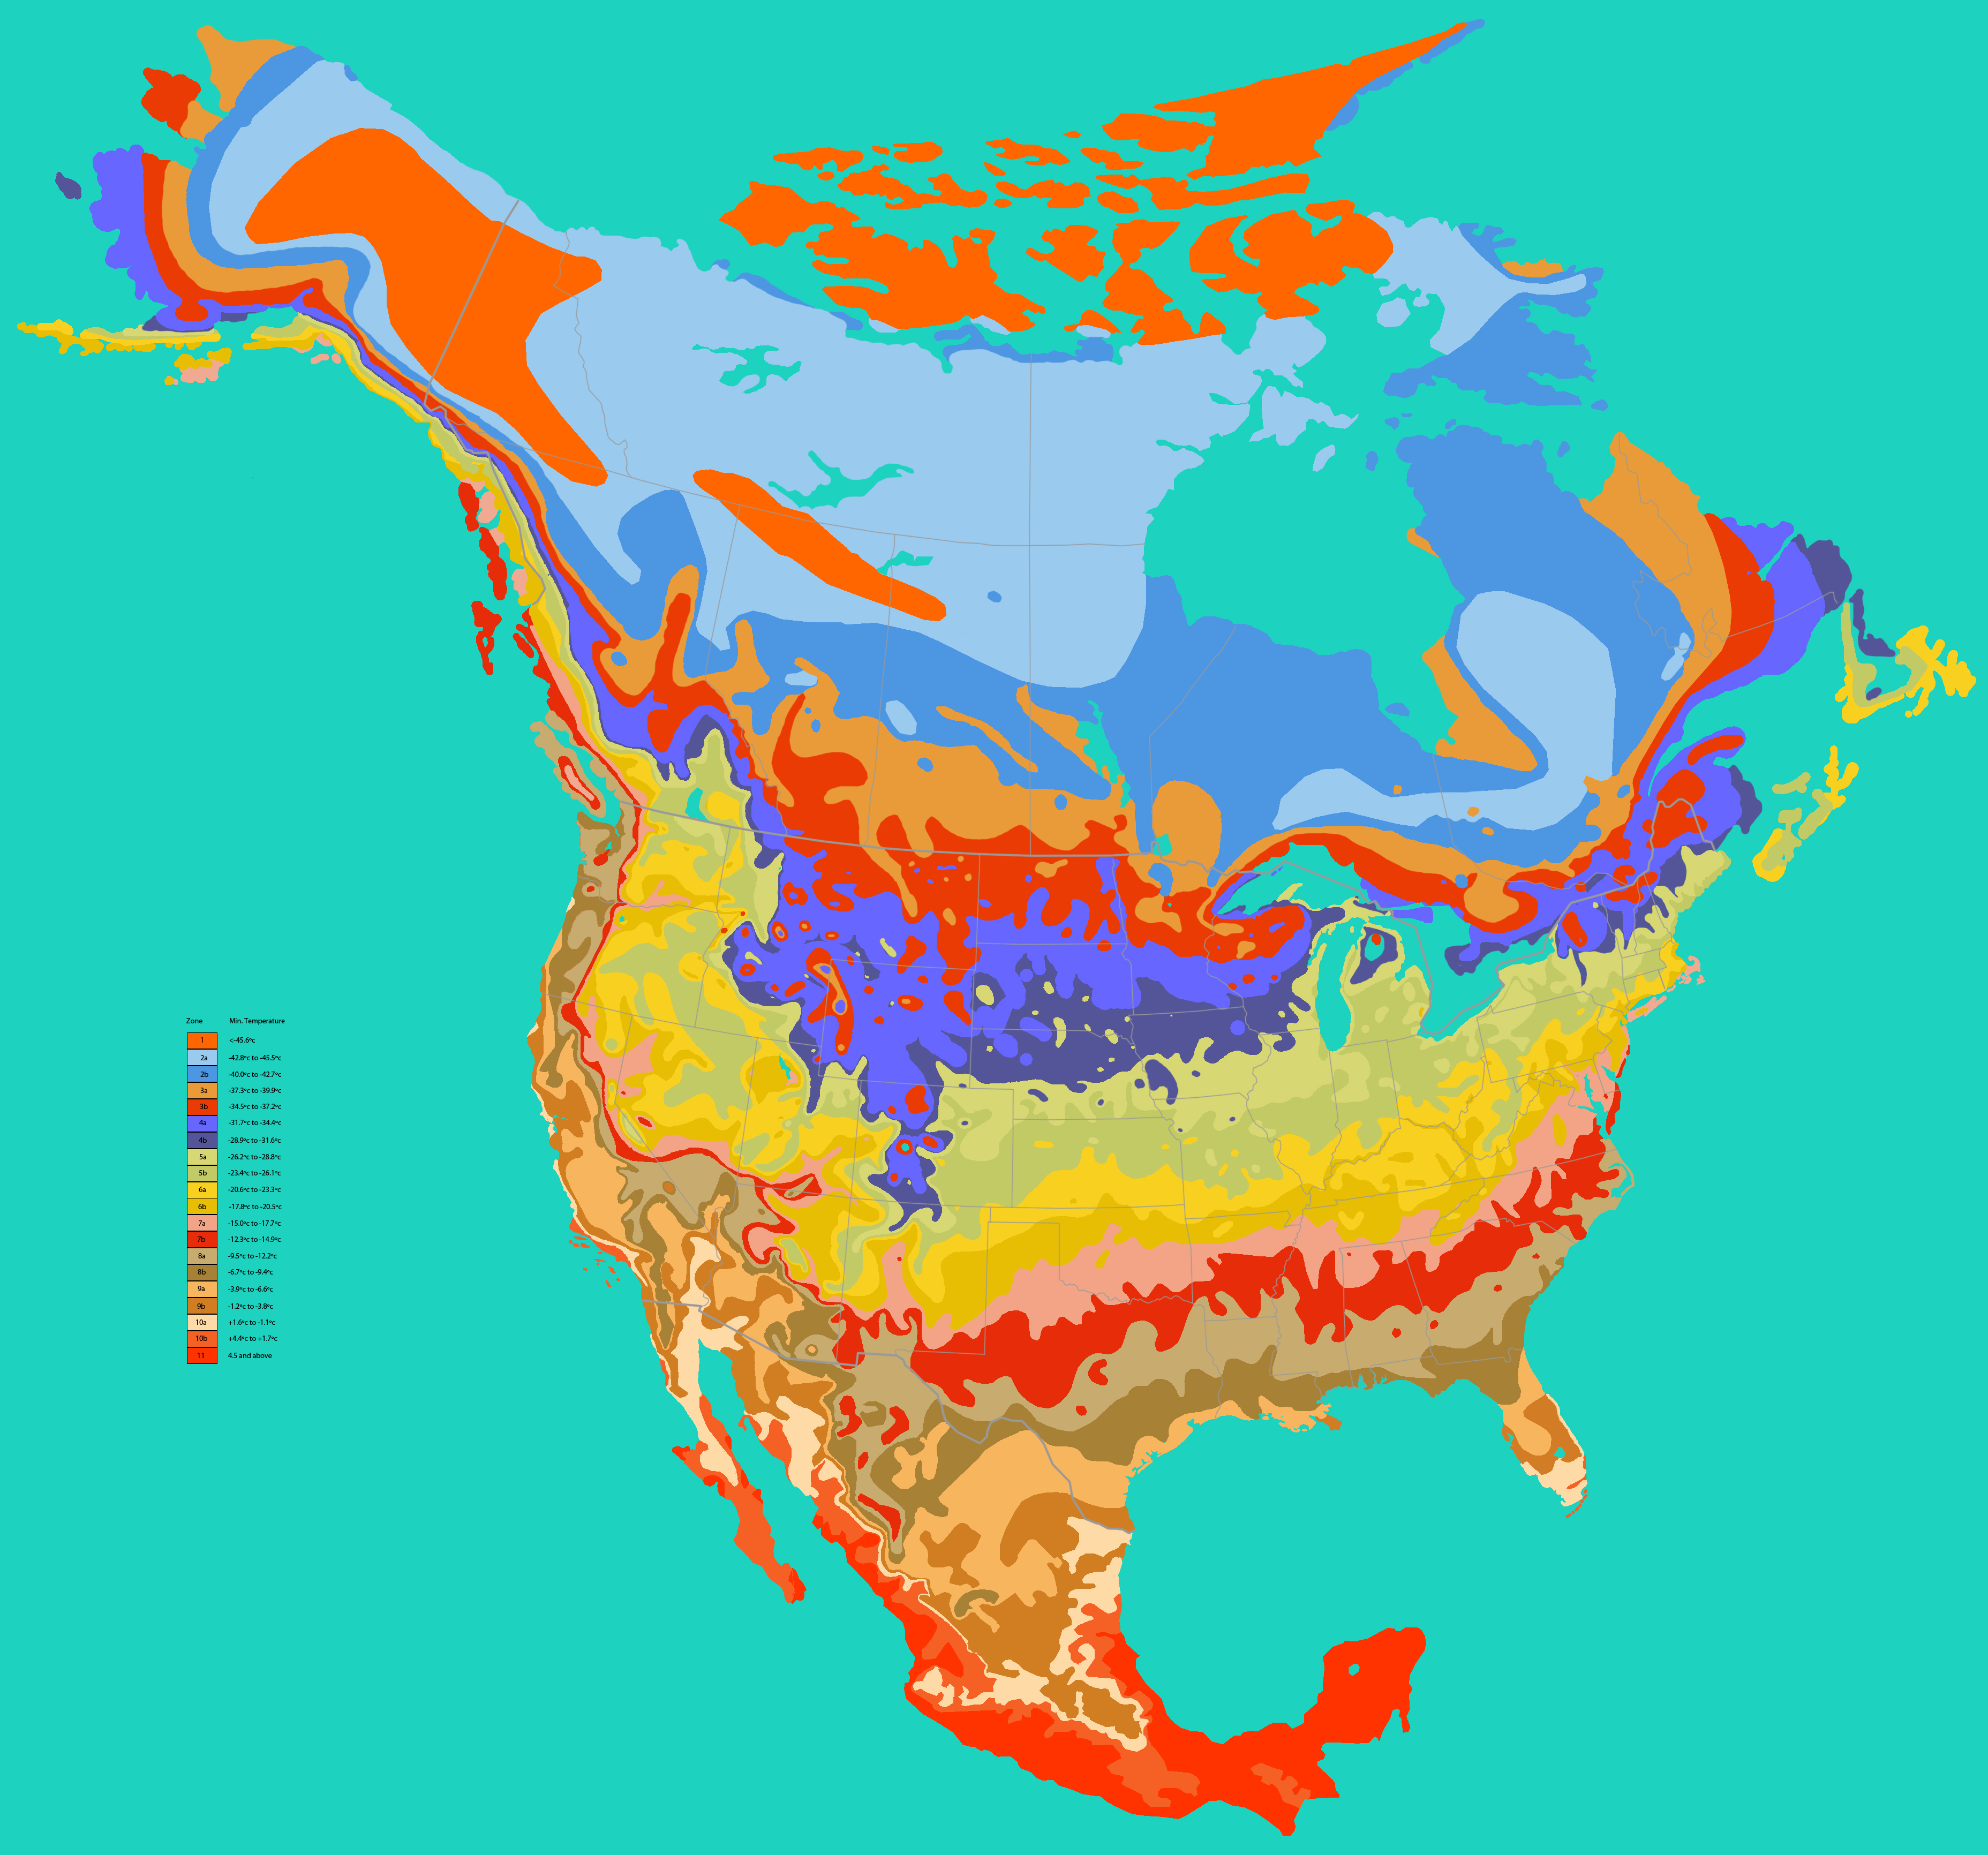 Us Zone Map - Map of us growing zones